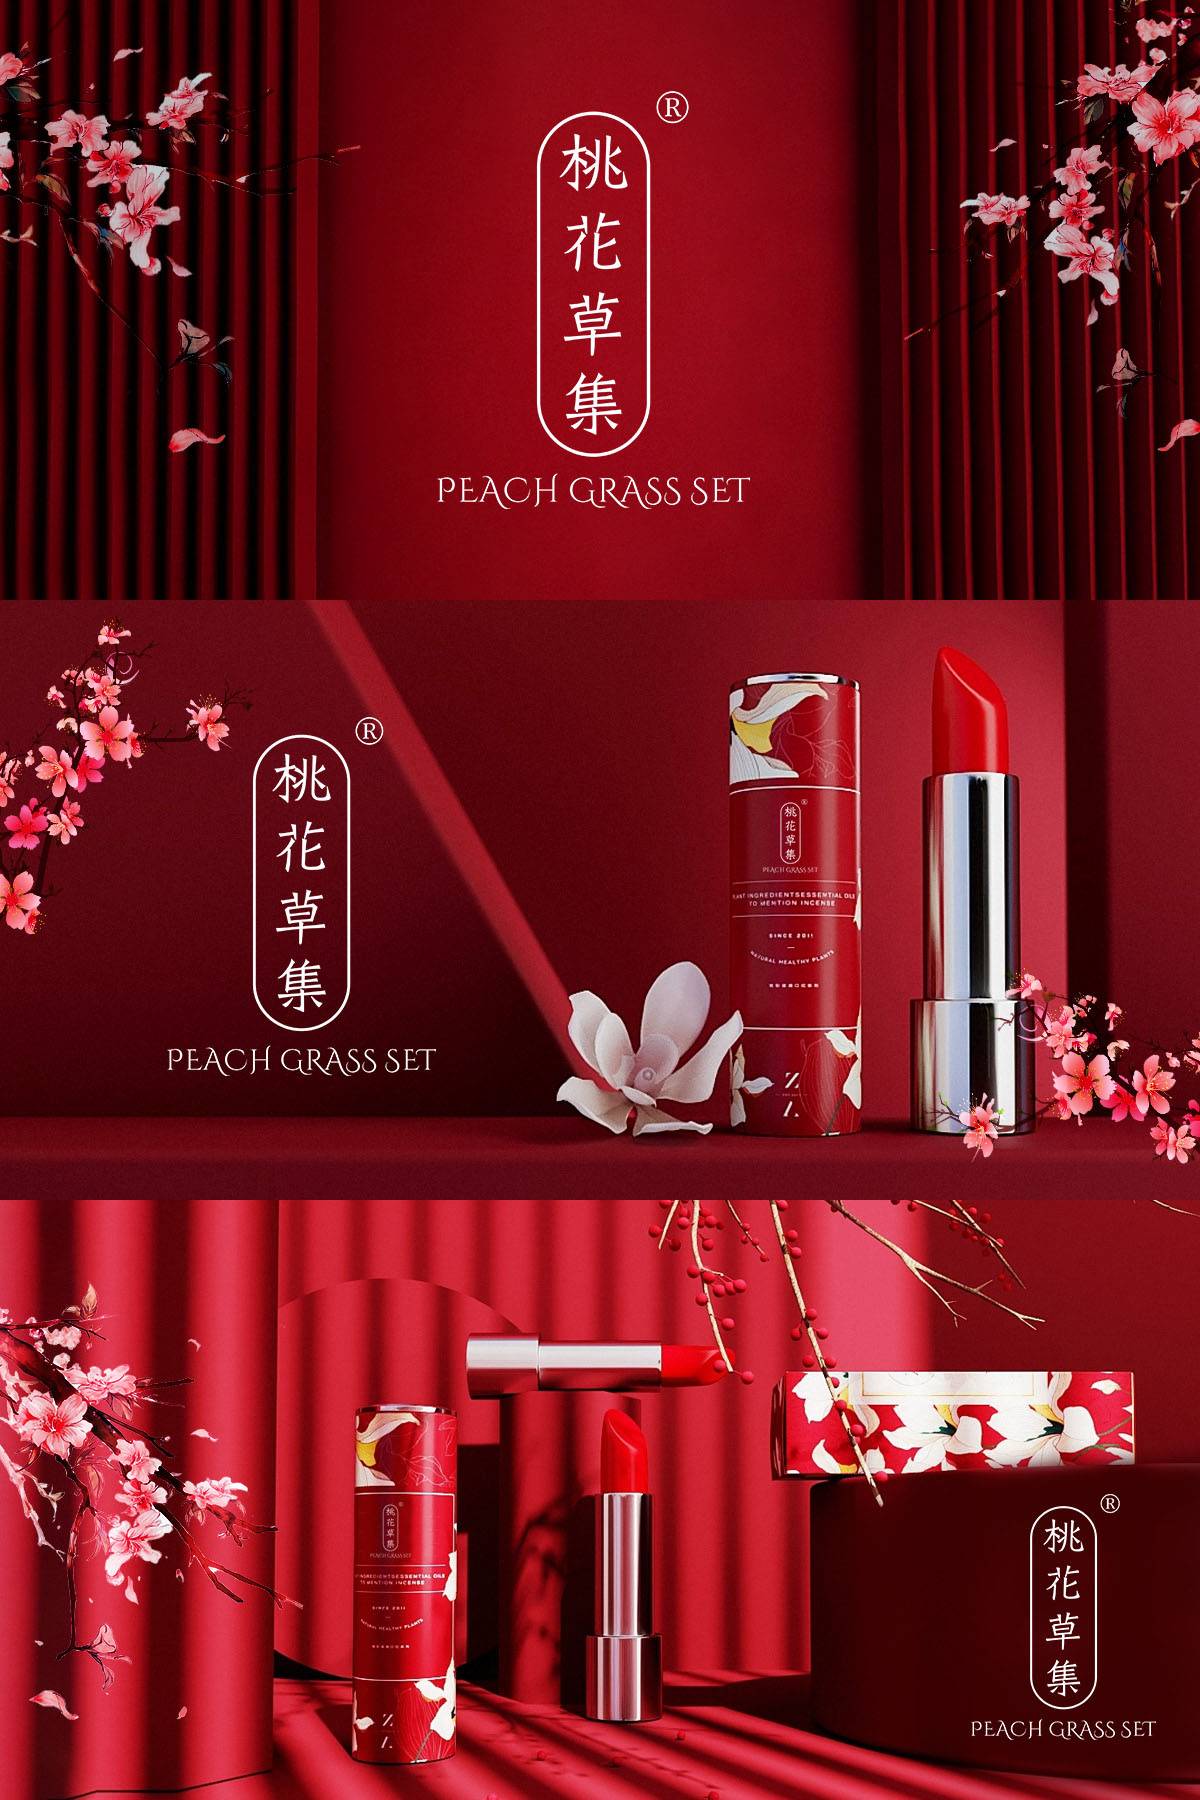 桃花草集PEACH GRASS SET